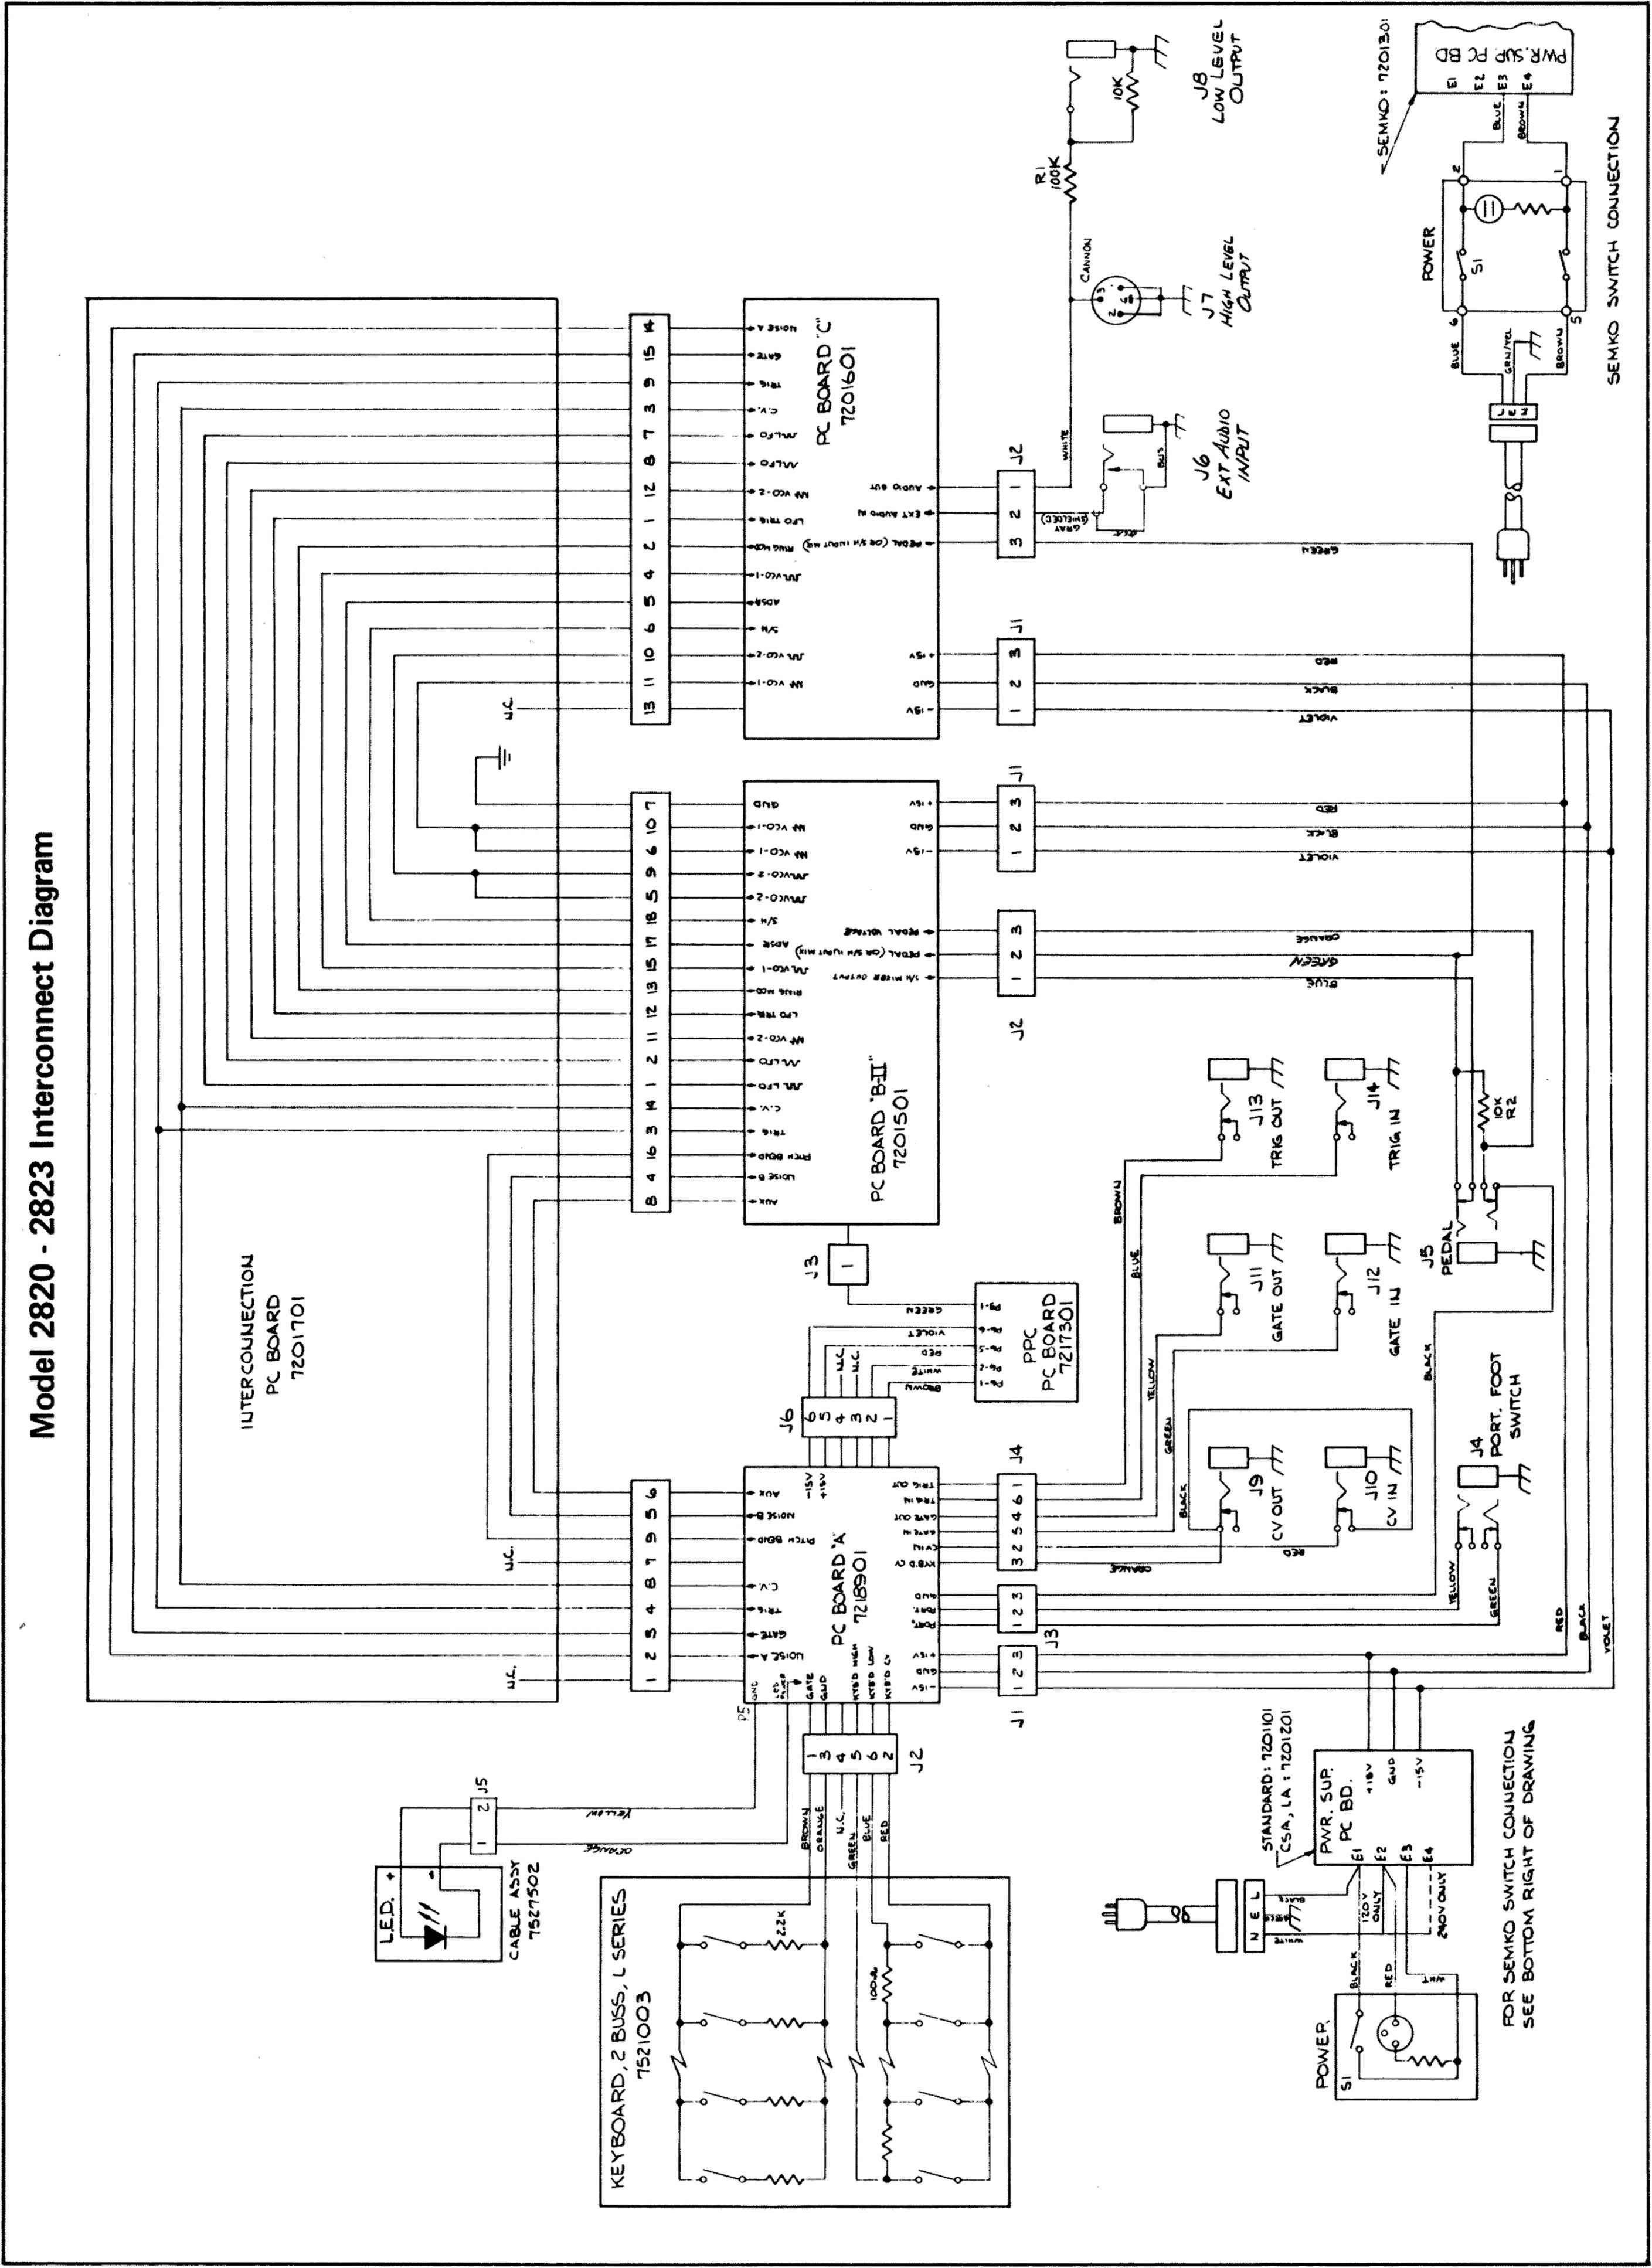 Assemblydissassembly Arp Odyssey Raynet Repair Services Wiring Diagram Jupiter Z1 Scph 1200 Controller Board